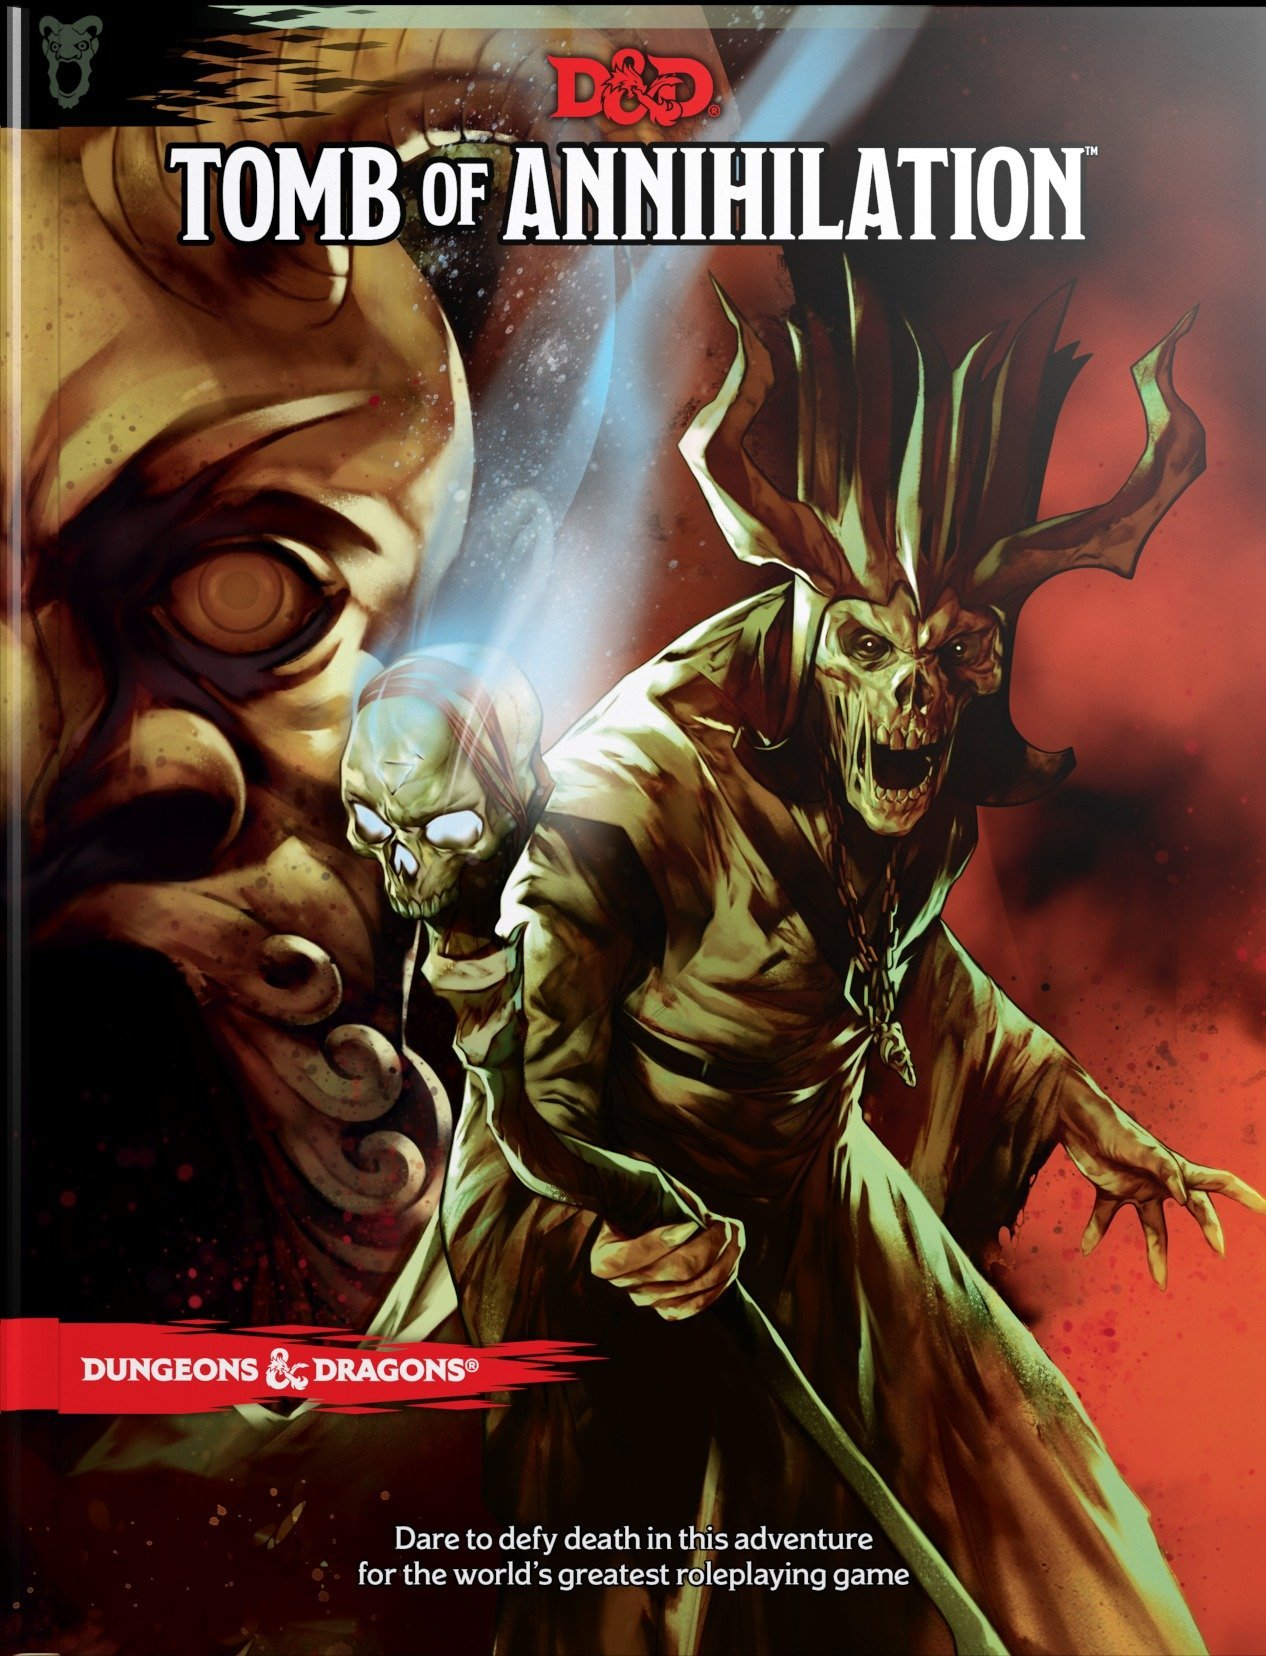 Tomb of Annihilation (Dungeons & Dragons) by Dungeons & Dragons